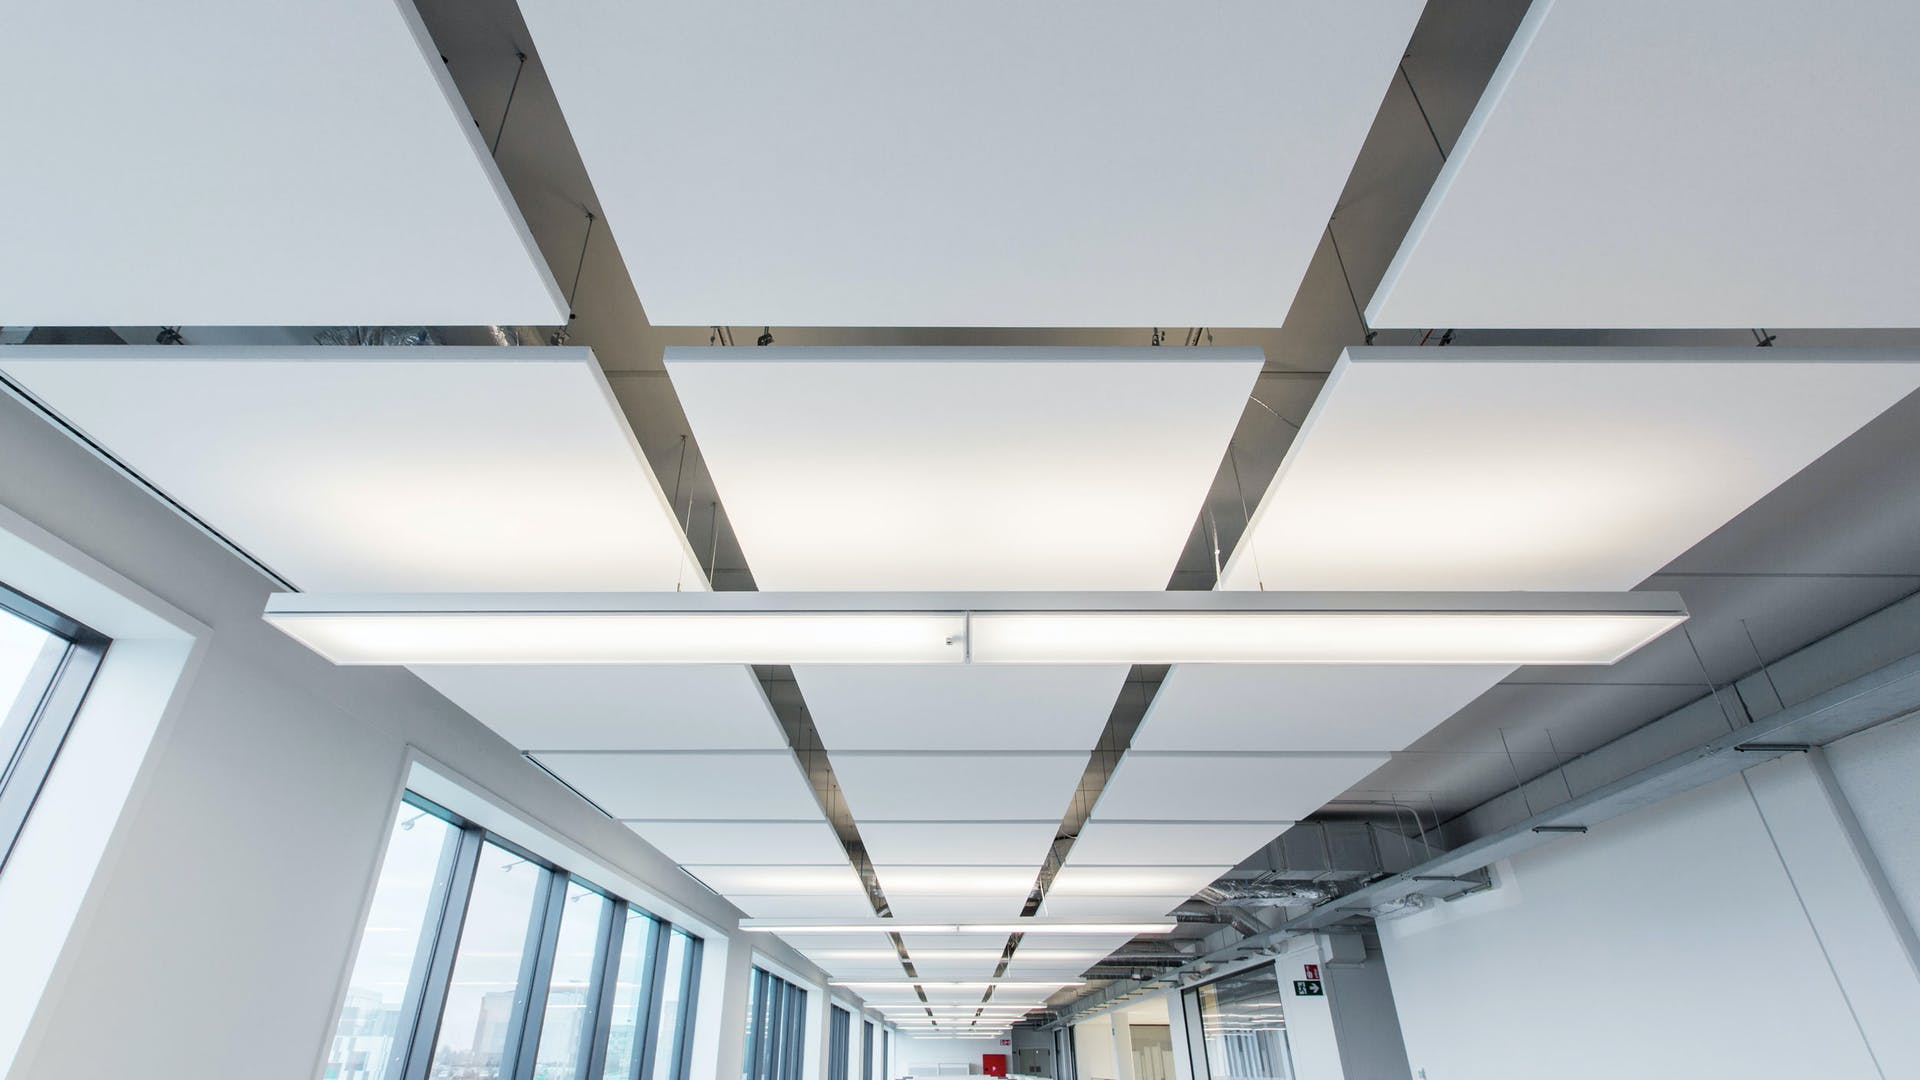 Frameless acoustic ceiling island (ceiling cloud) with Rockfon Eclipse (excellent sound absorption, high light reflection & light diffusion)